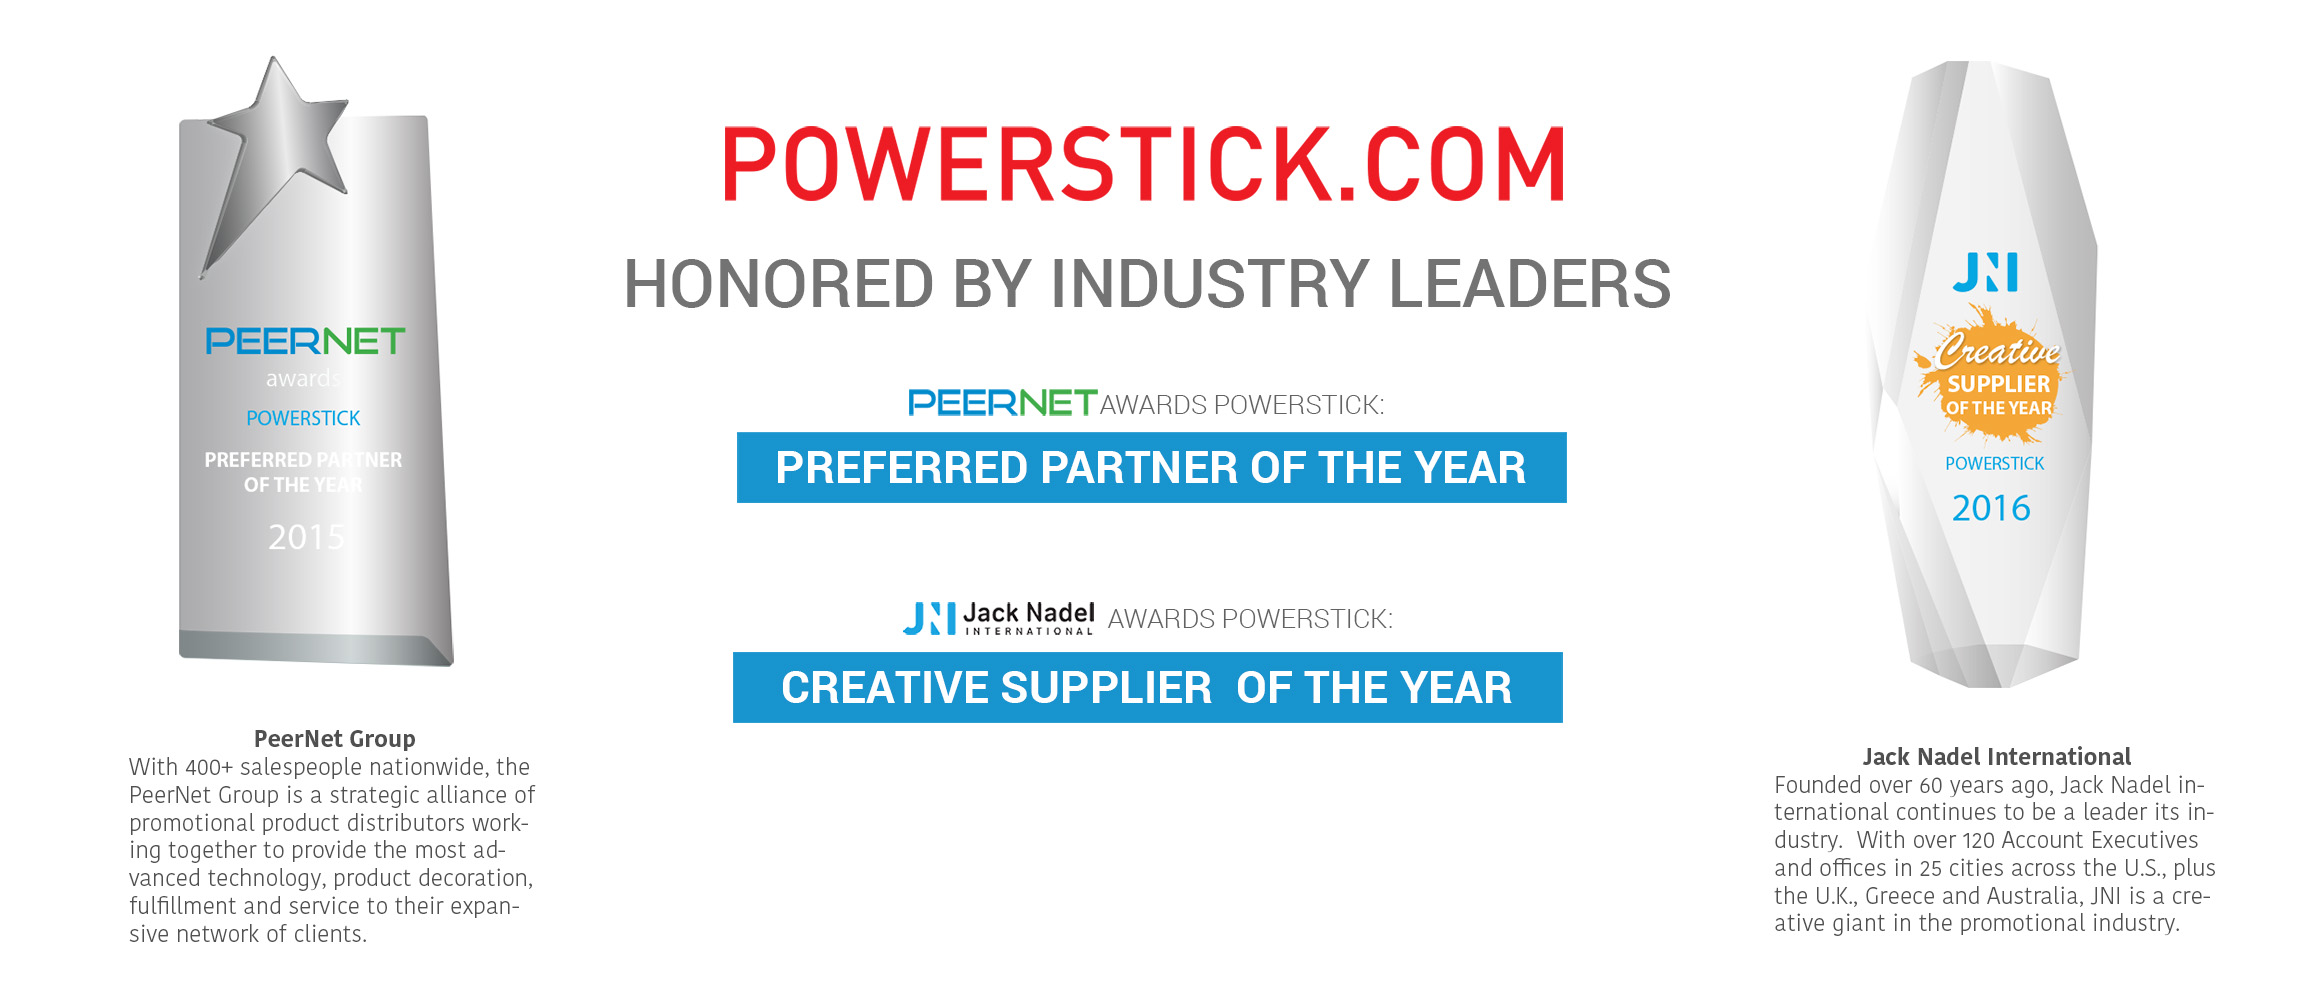 PowerStick.com honored by industry leaders